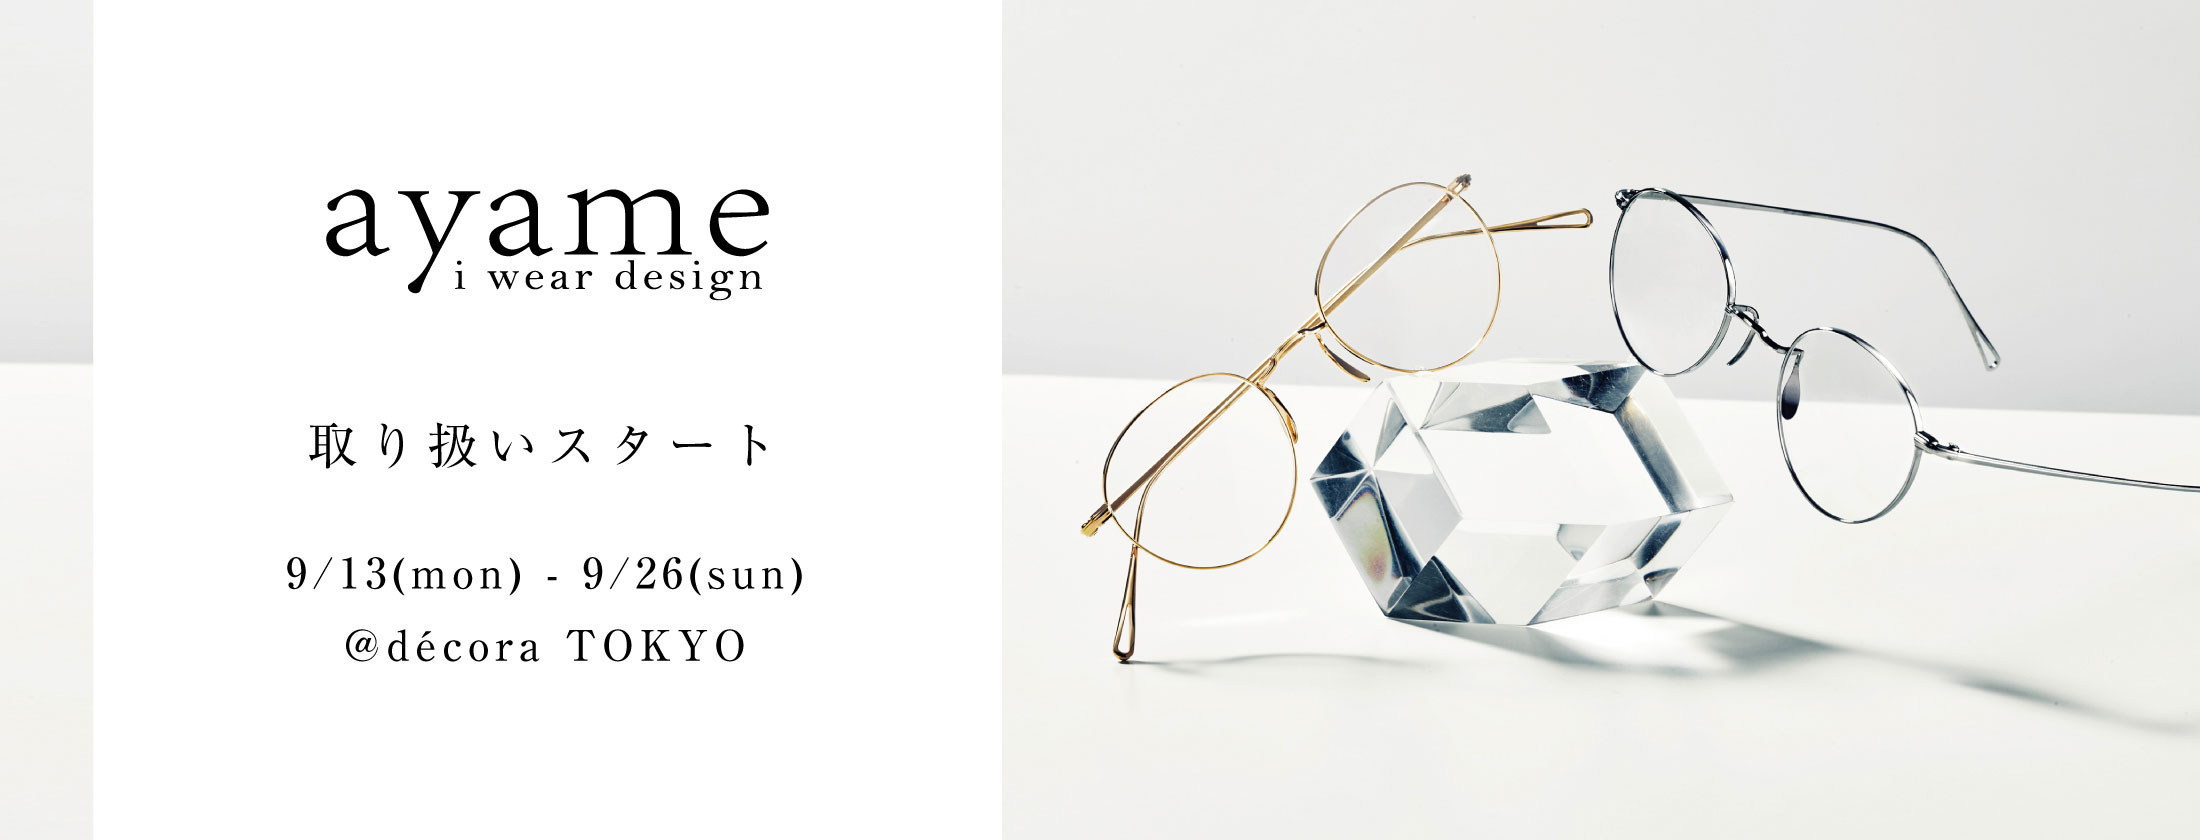 ayame SUMMER TOUR 2021 NEW COLLECTION TOKYO